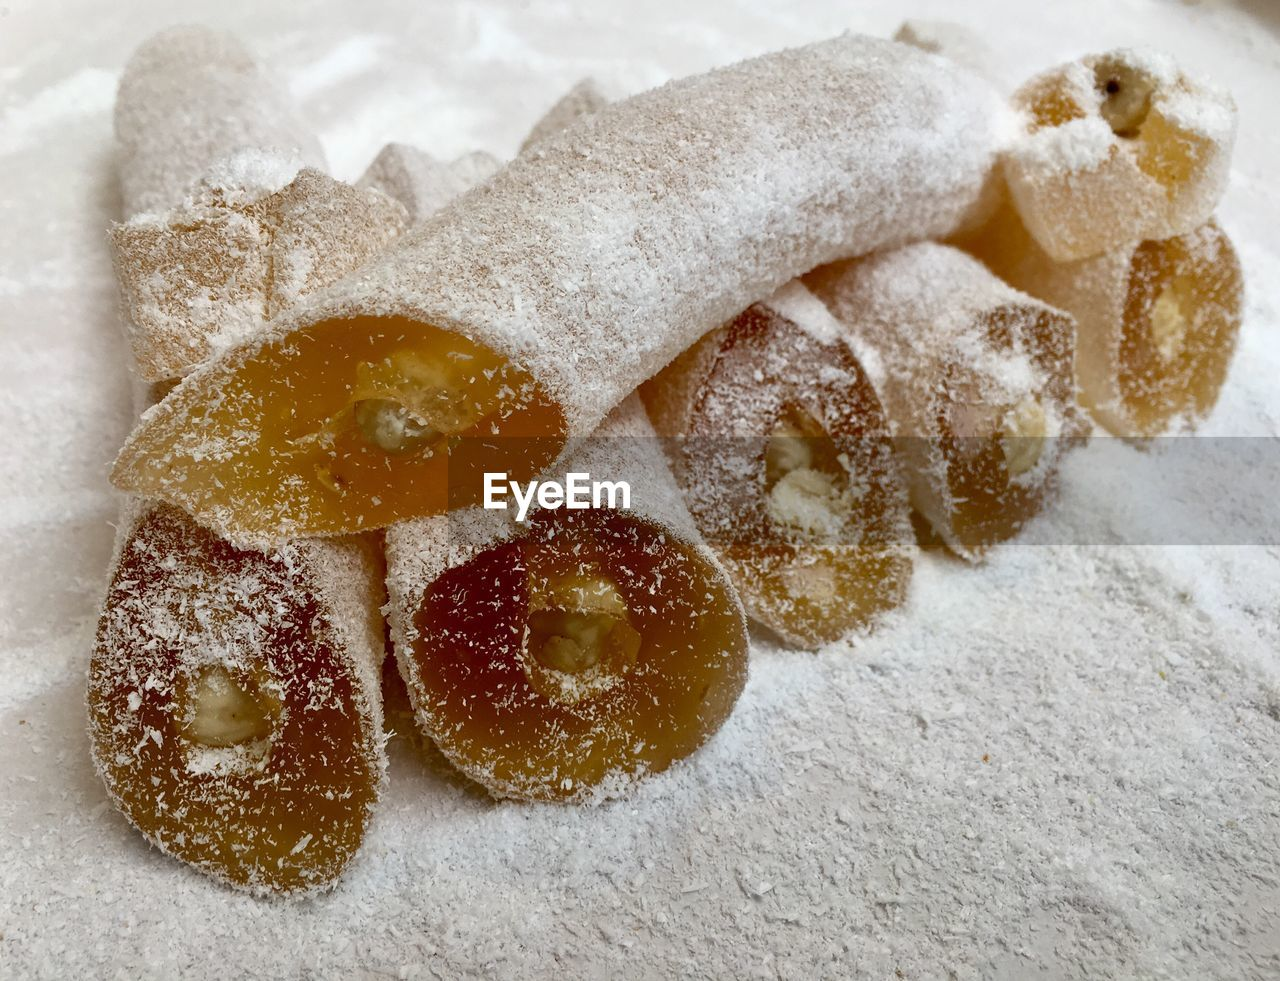 food, food and drink, indoors, freshness, still life, no people, close-up, sweet food, sugar, powdered sugar, high angle view, flour, indulgence, focus on foreground, winter, ready-to-eat, sweet, cold temperature, snow, healthy eating, temptation